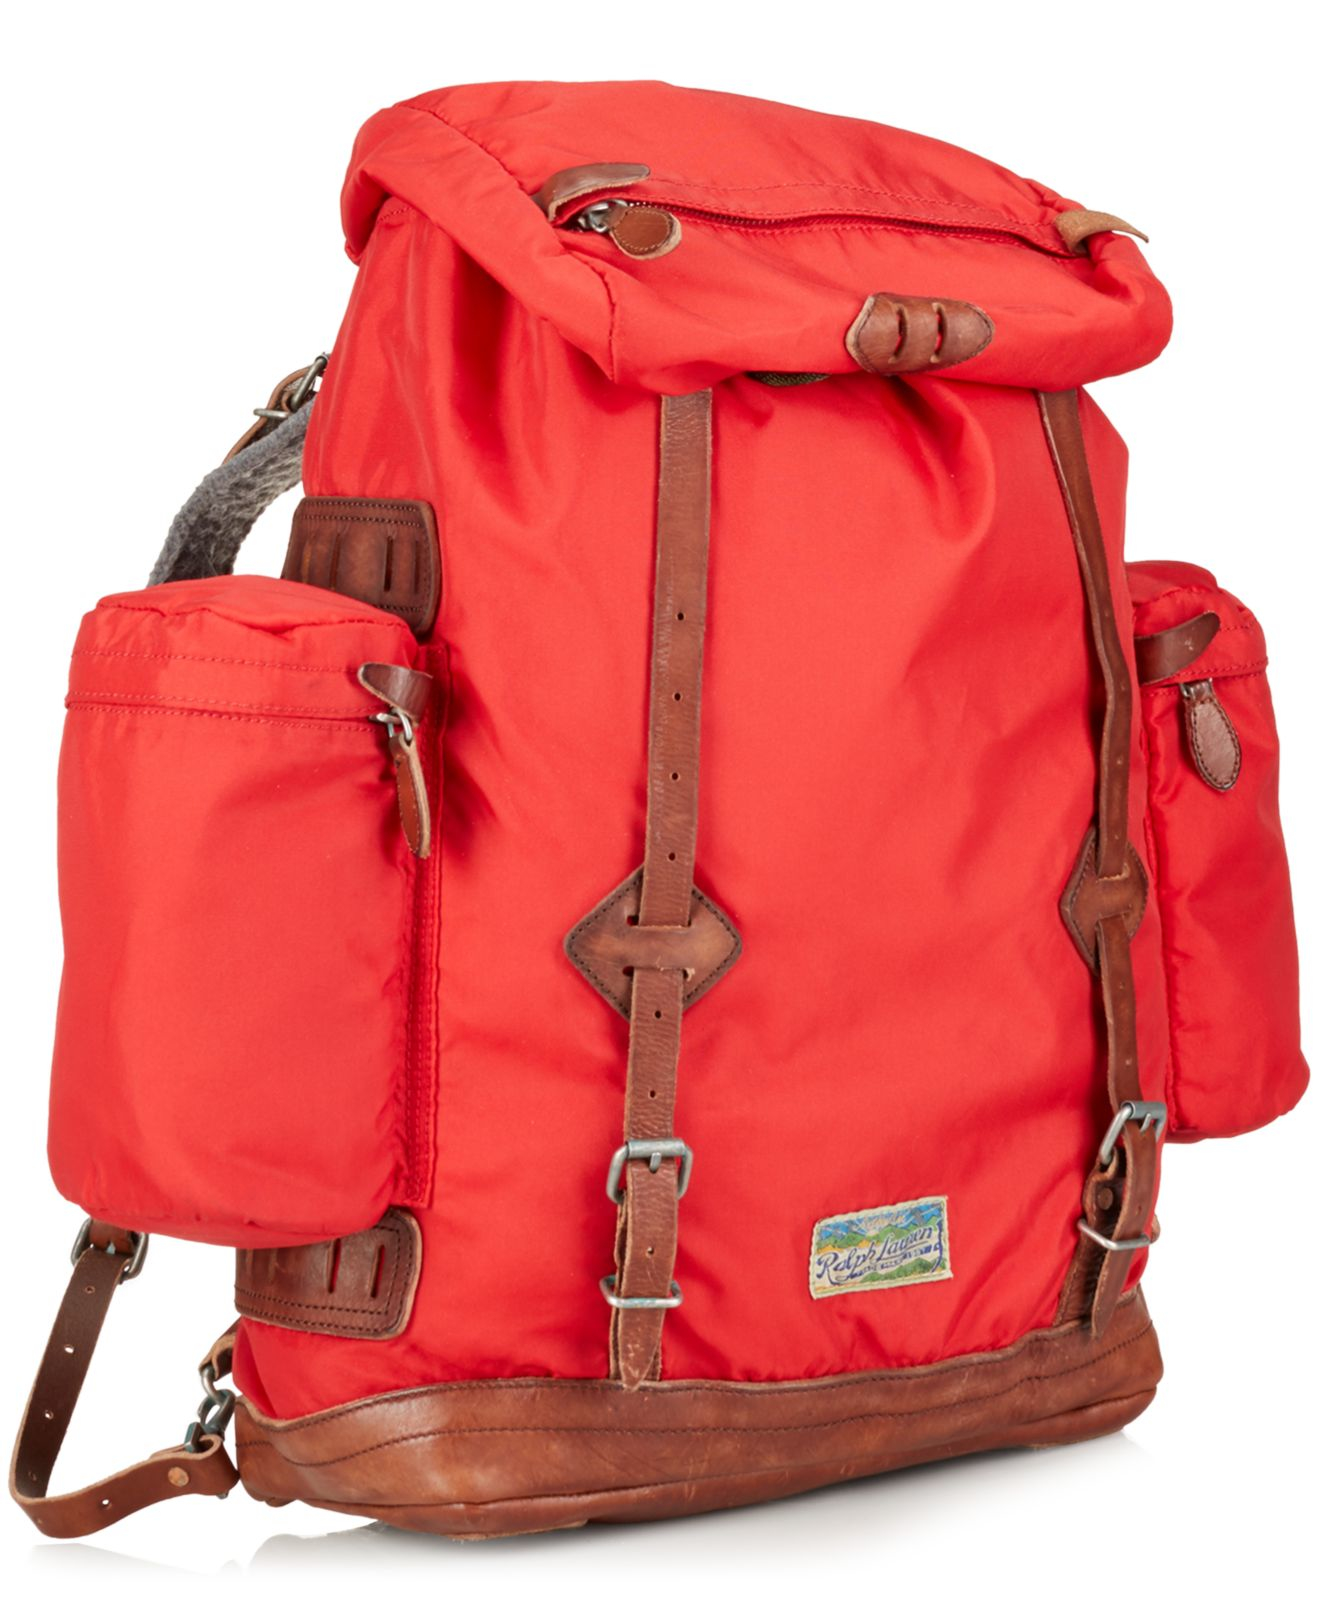 Lyst - Polo Ralph Lauren Camo Nylon Utility Backpack in Red for Men 3940790050653